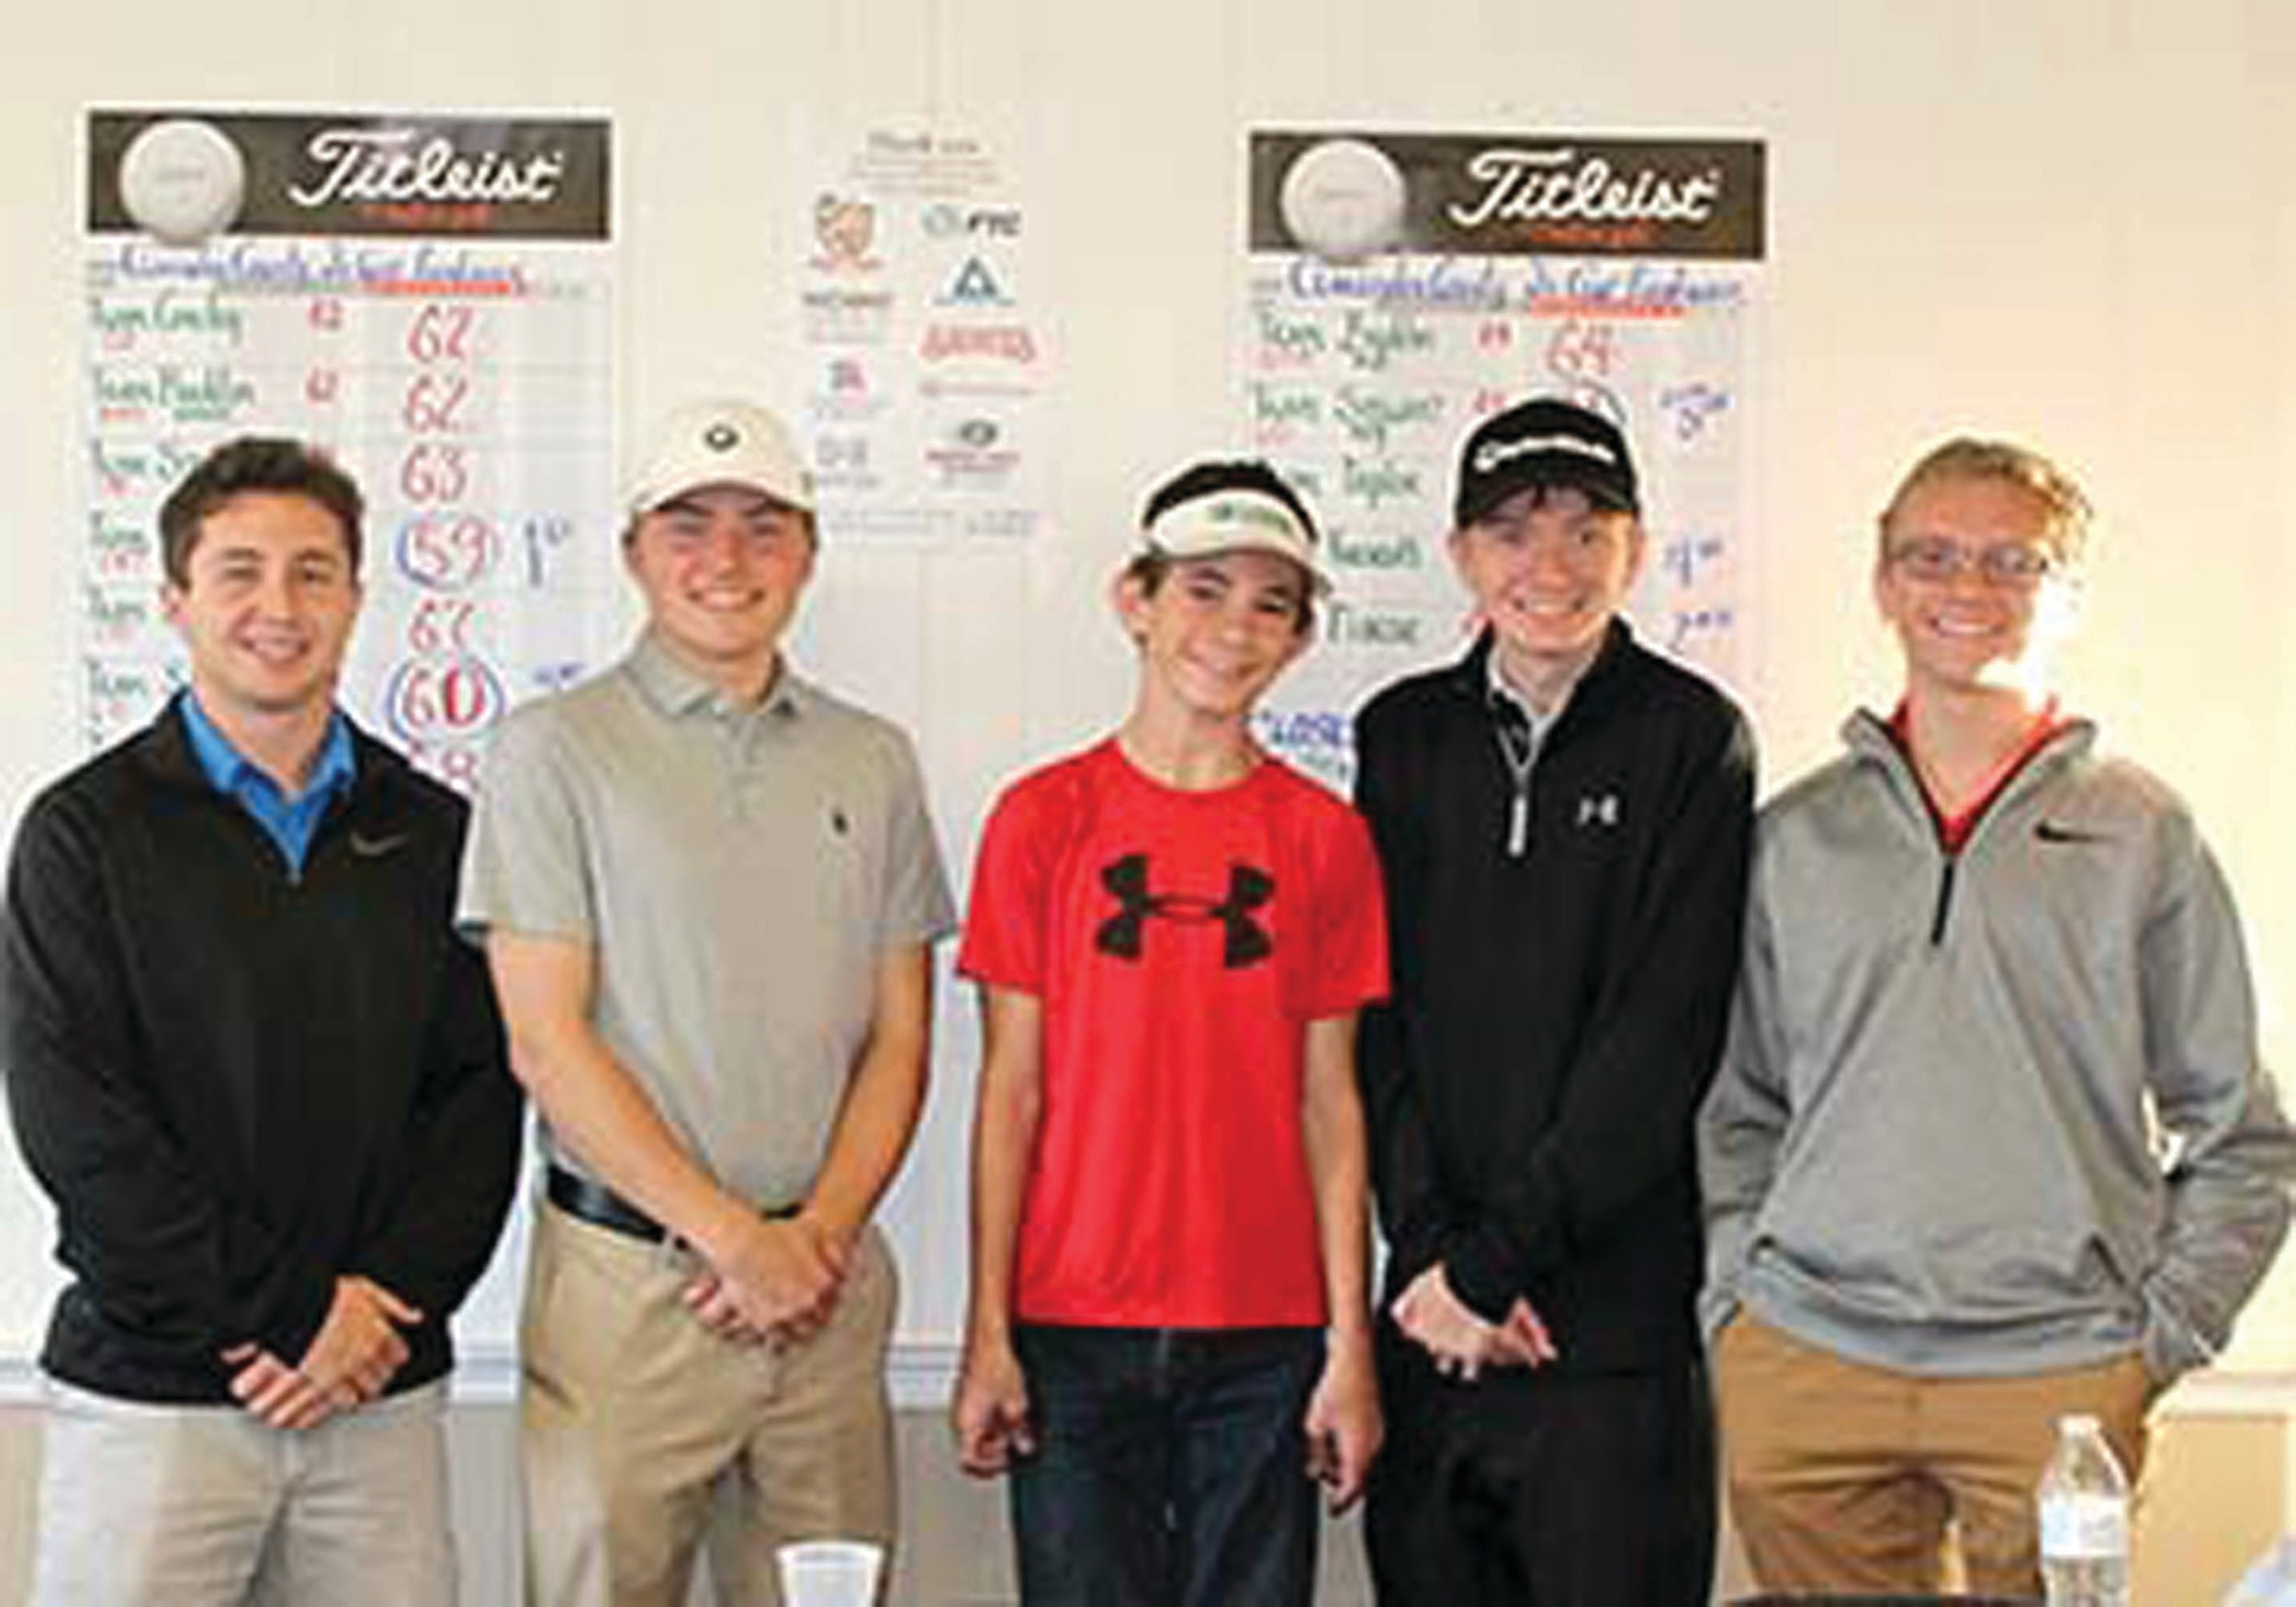 The Clarendon County Youth Golf Program produces winners. From left are Jacob Richburg, 17; Robert Dykes, 17; Stephen Ard, 13; Hunter White, 17; and Brice Laney, 17. Richburg, Dykes and White finished in first place at Saturday's Clarendon County Youth Golf Tournament. Ard's team finished in third place, and Laney's team finished out of the top five.